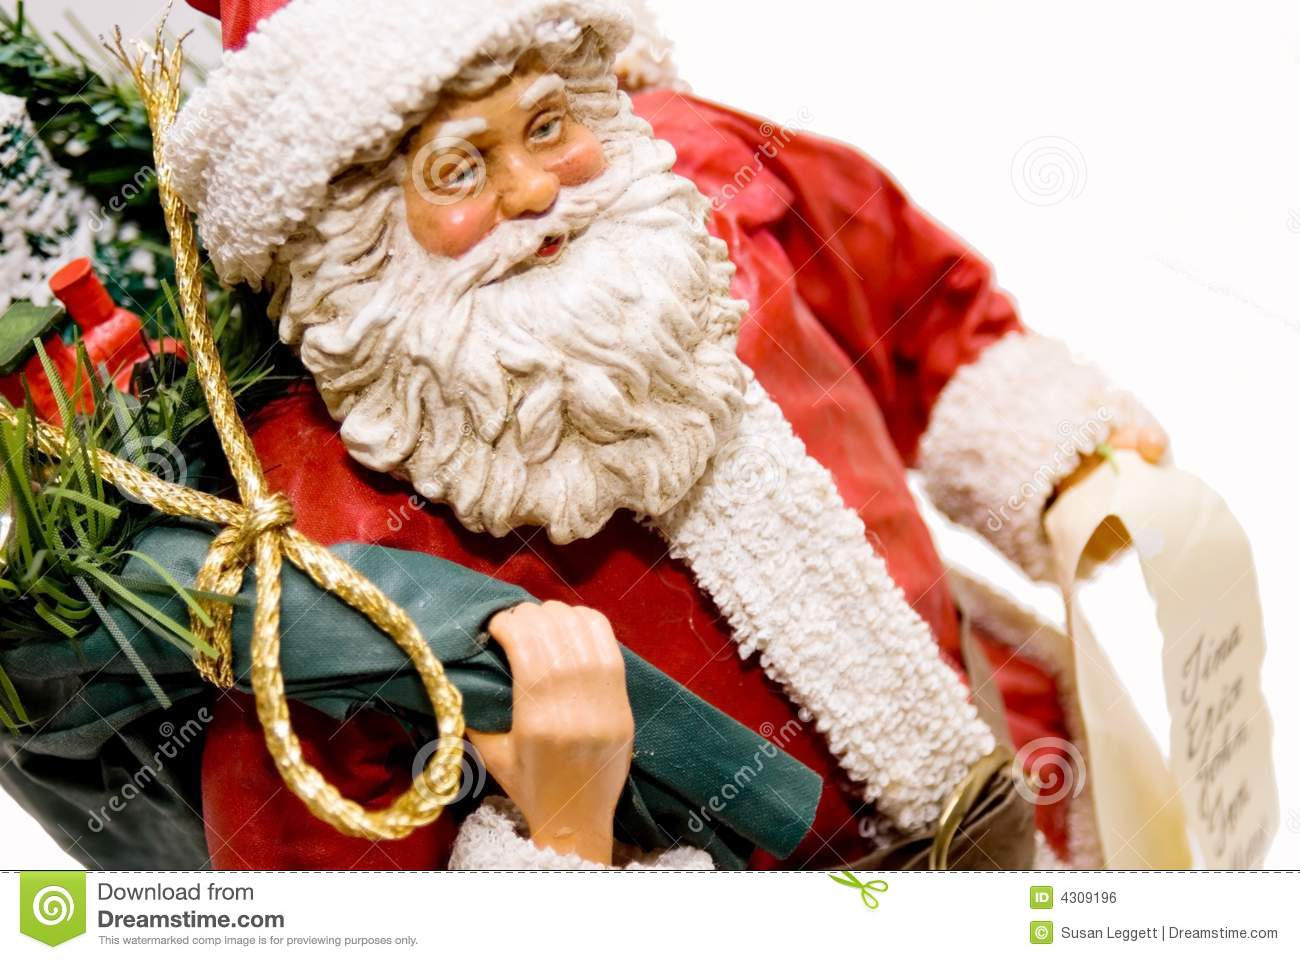 Santa Figurine/Gifts and List